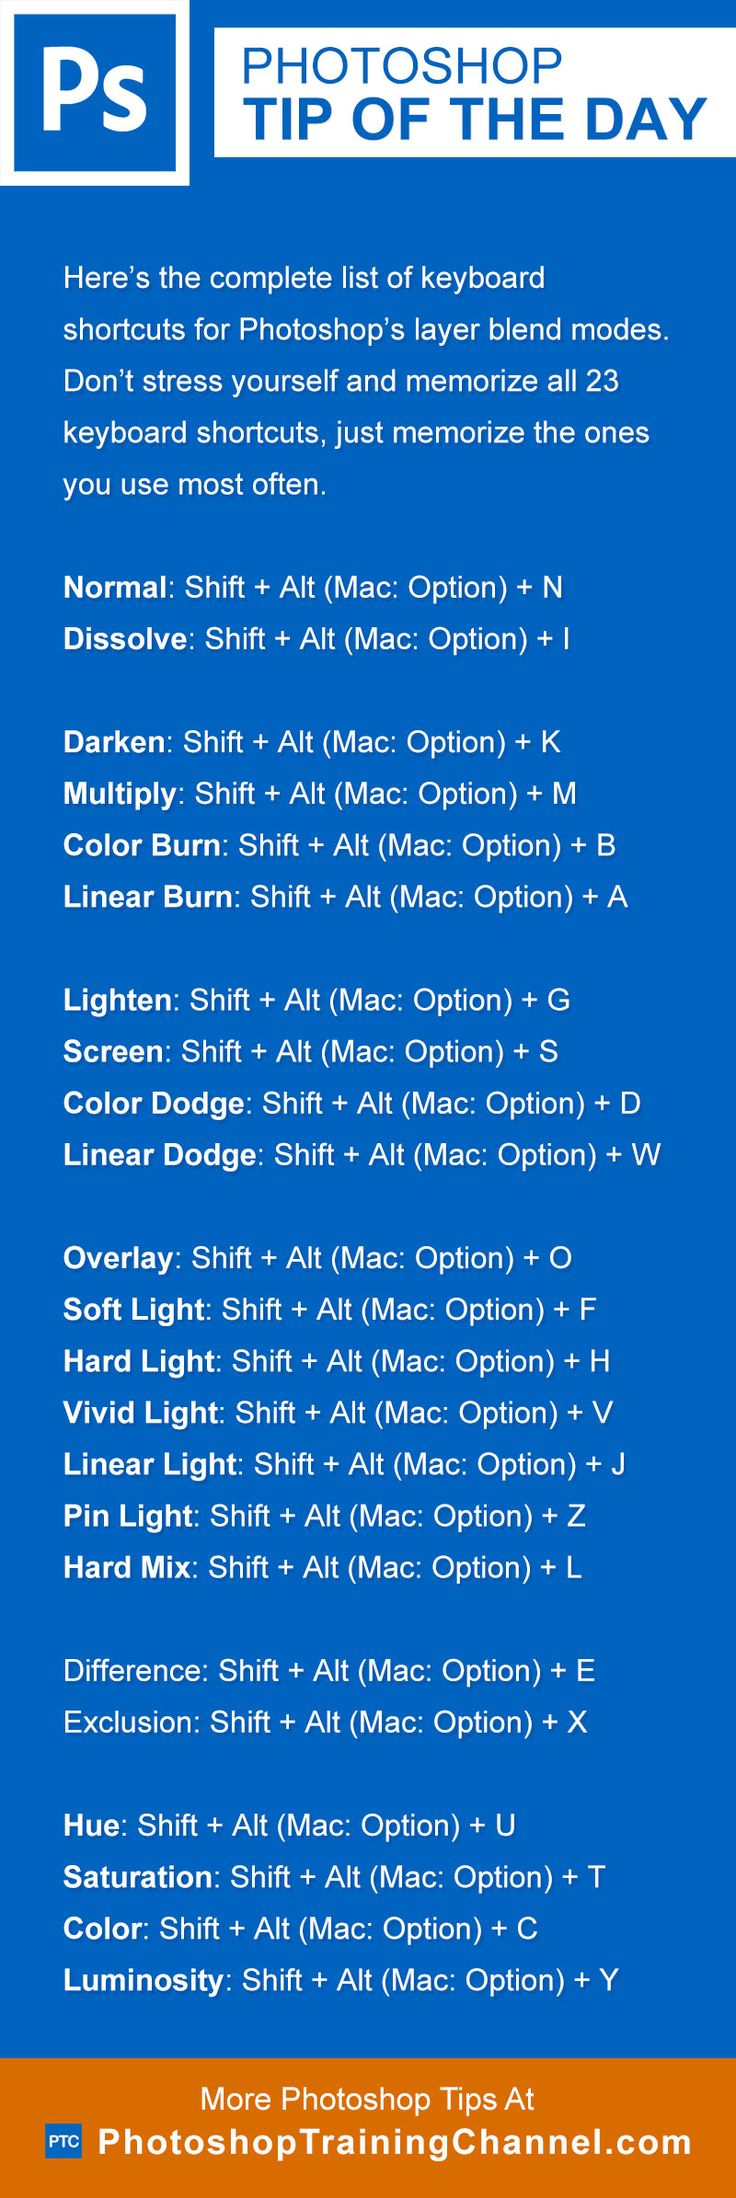 Learn to use blend mode keyboard shortcuts to save time and make Photoshop a little bit easier to work with!To cycle through blend modes quickly, hold Shift   (plus) to change to the next mode, and Shift - (minus) to change to the previous mode.Click on link to see the full list.